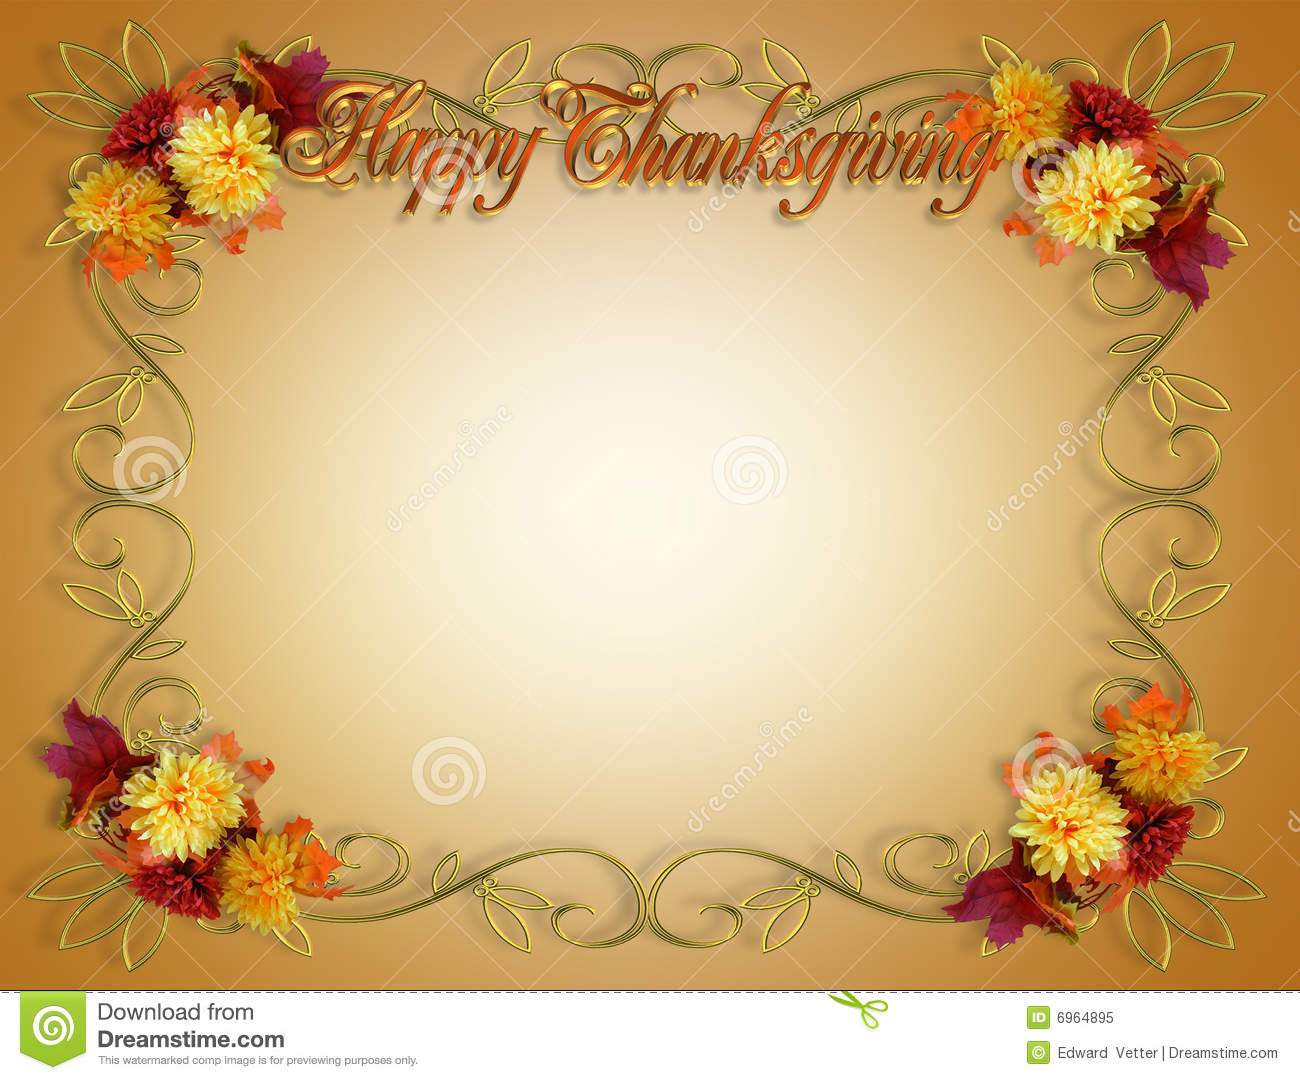 Thanksgiving Borders For Word Documents